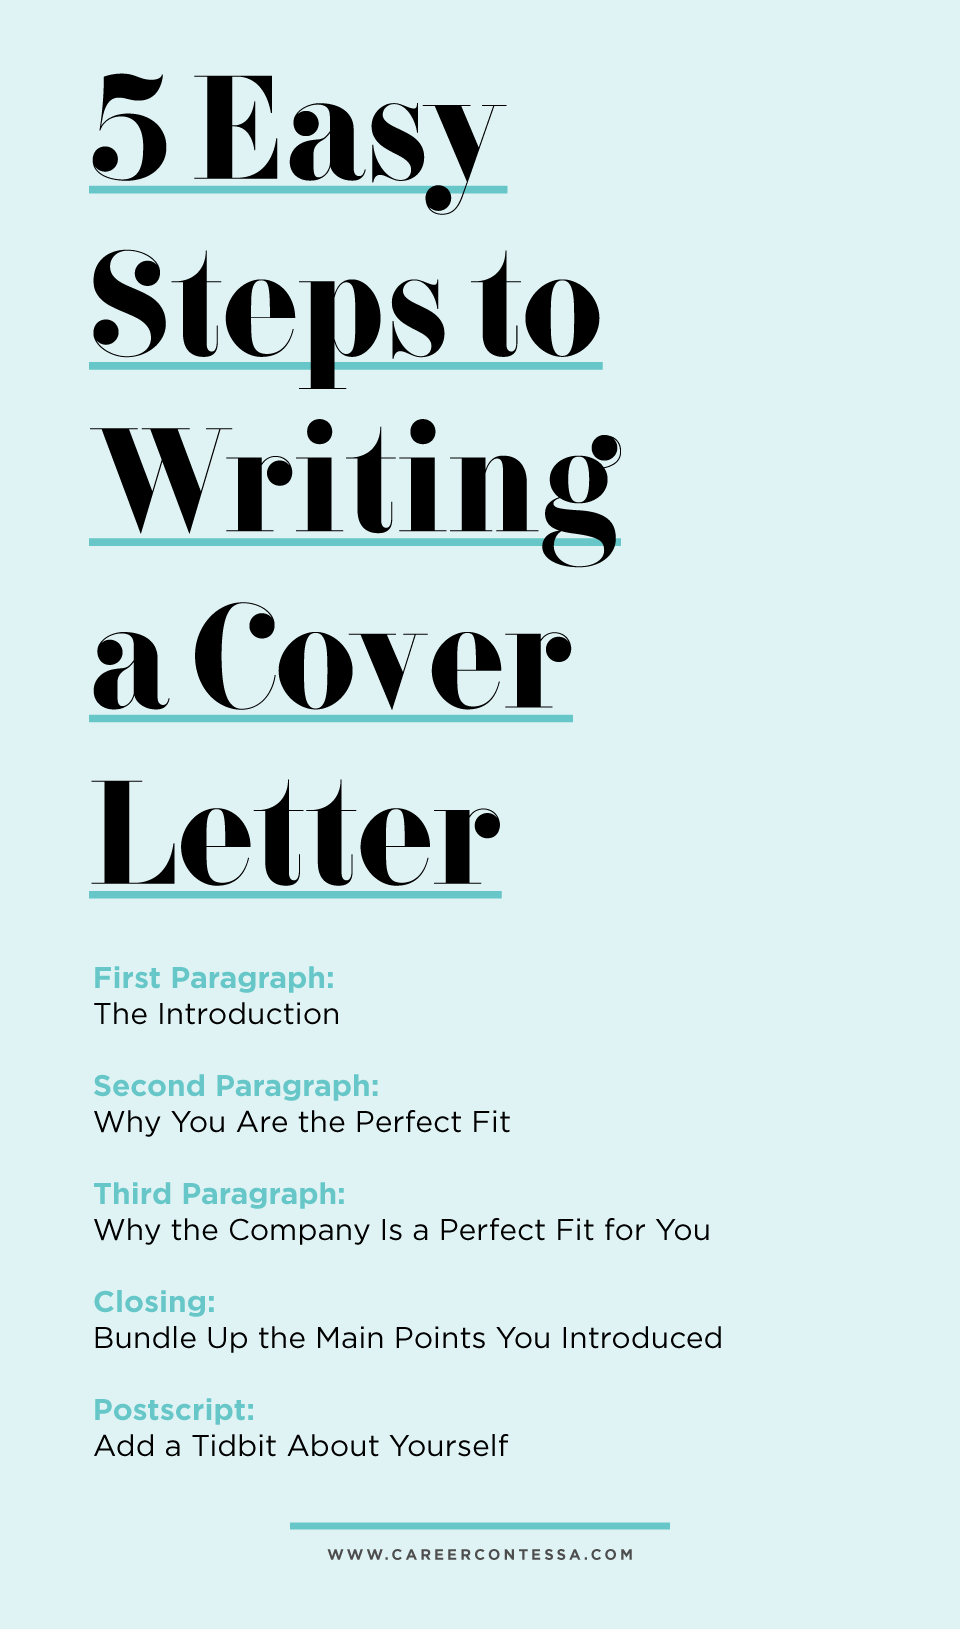 5 Easy Steps to Writing a Cover Letter | Career Contessa